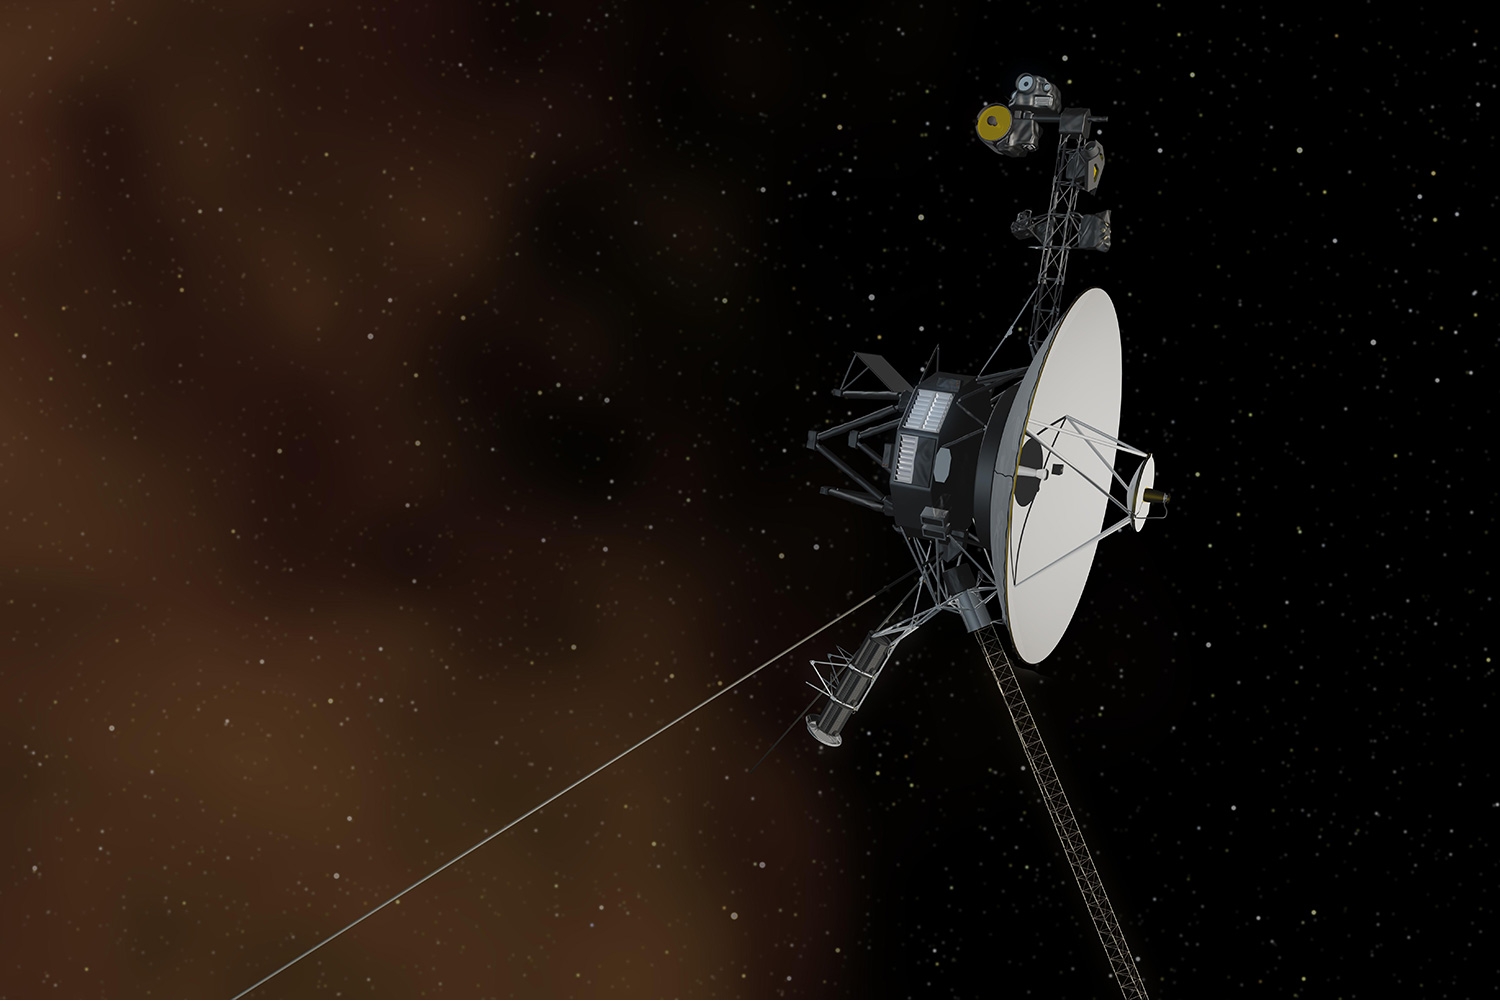 Humanity's Most Distant Traveler Still Going After 37 Years, 13 Billion Miles